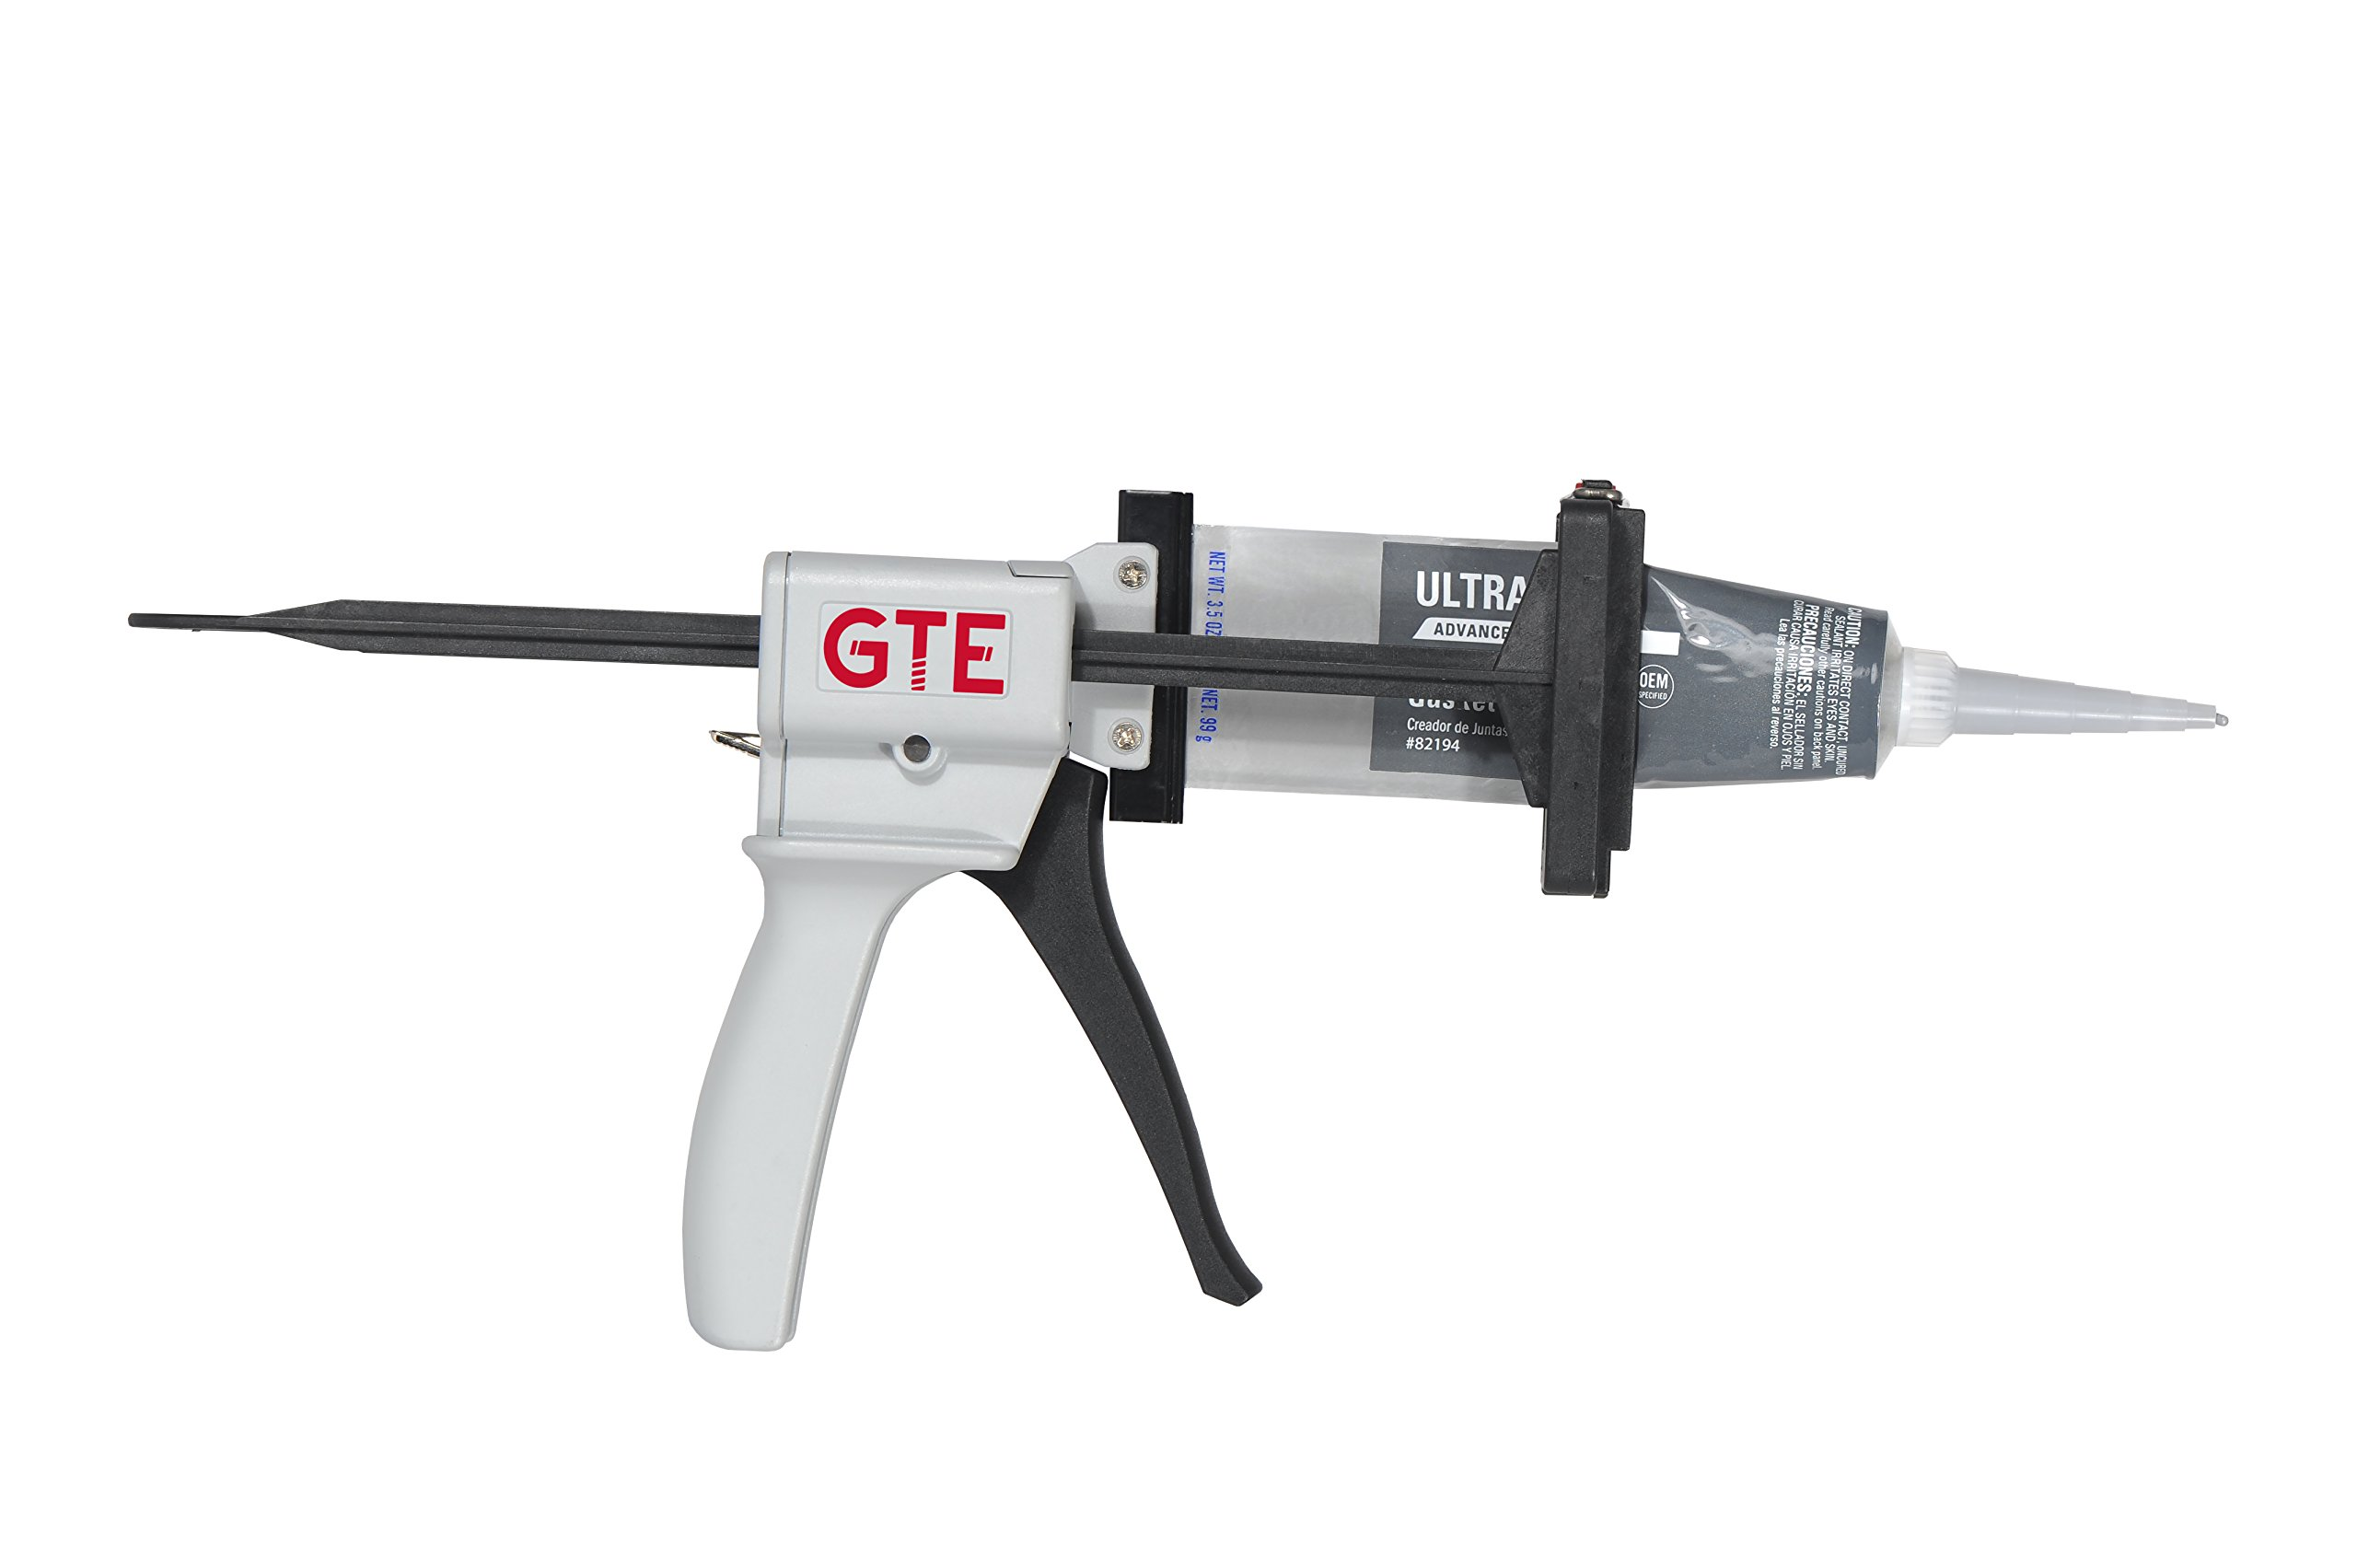 GTE Tools MasterBead Professional Adhesive or Silicone Dispenser Gun for Aluminum Tubes up to 2.5'' Automatic Reload Smooth Trigger Action Highest Rated Dispenser Gun by Professional Technicians